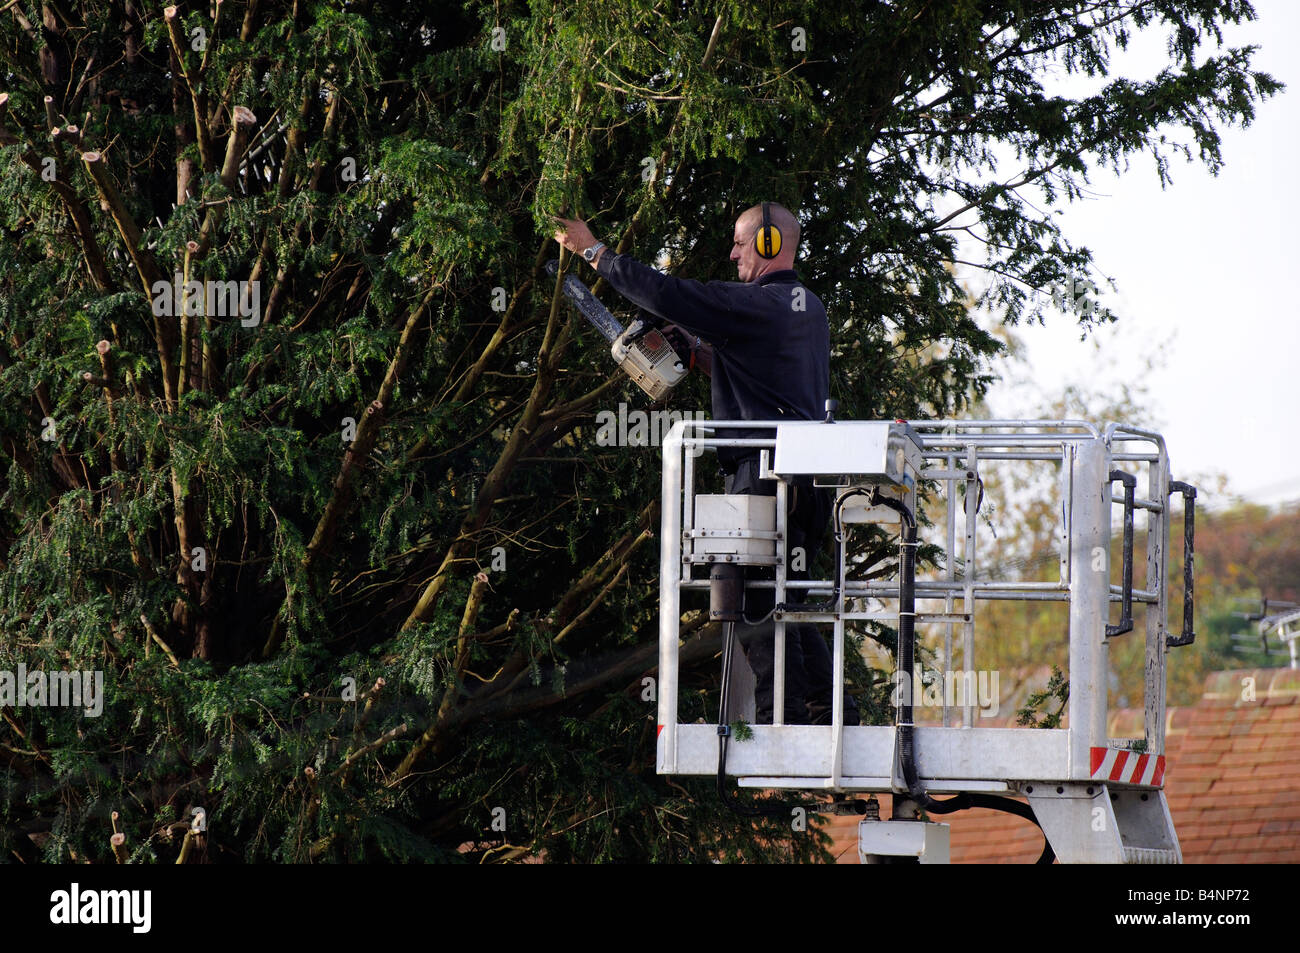 Tree surgeon using a chain saw from a cherrypicker mobile platform to cut a Yew tree - Stock Image